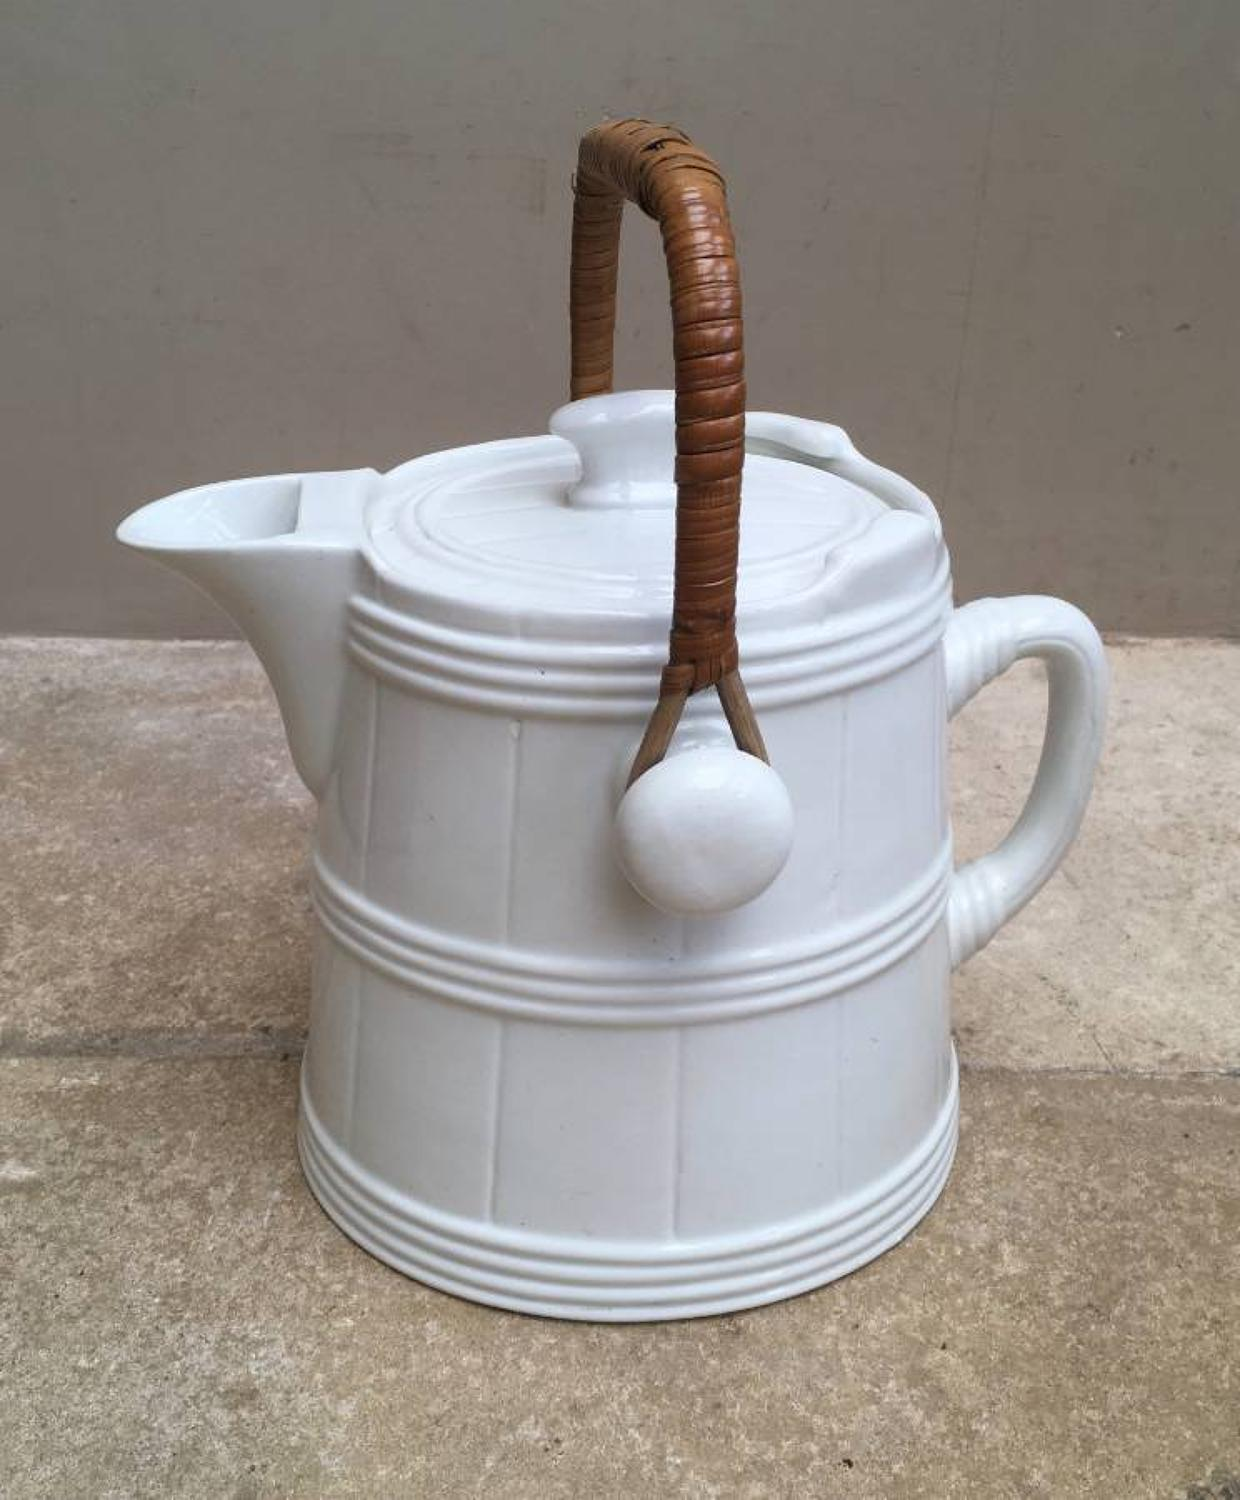 Edwardian White Banded Hot Water Jug with Handle